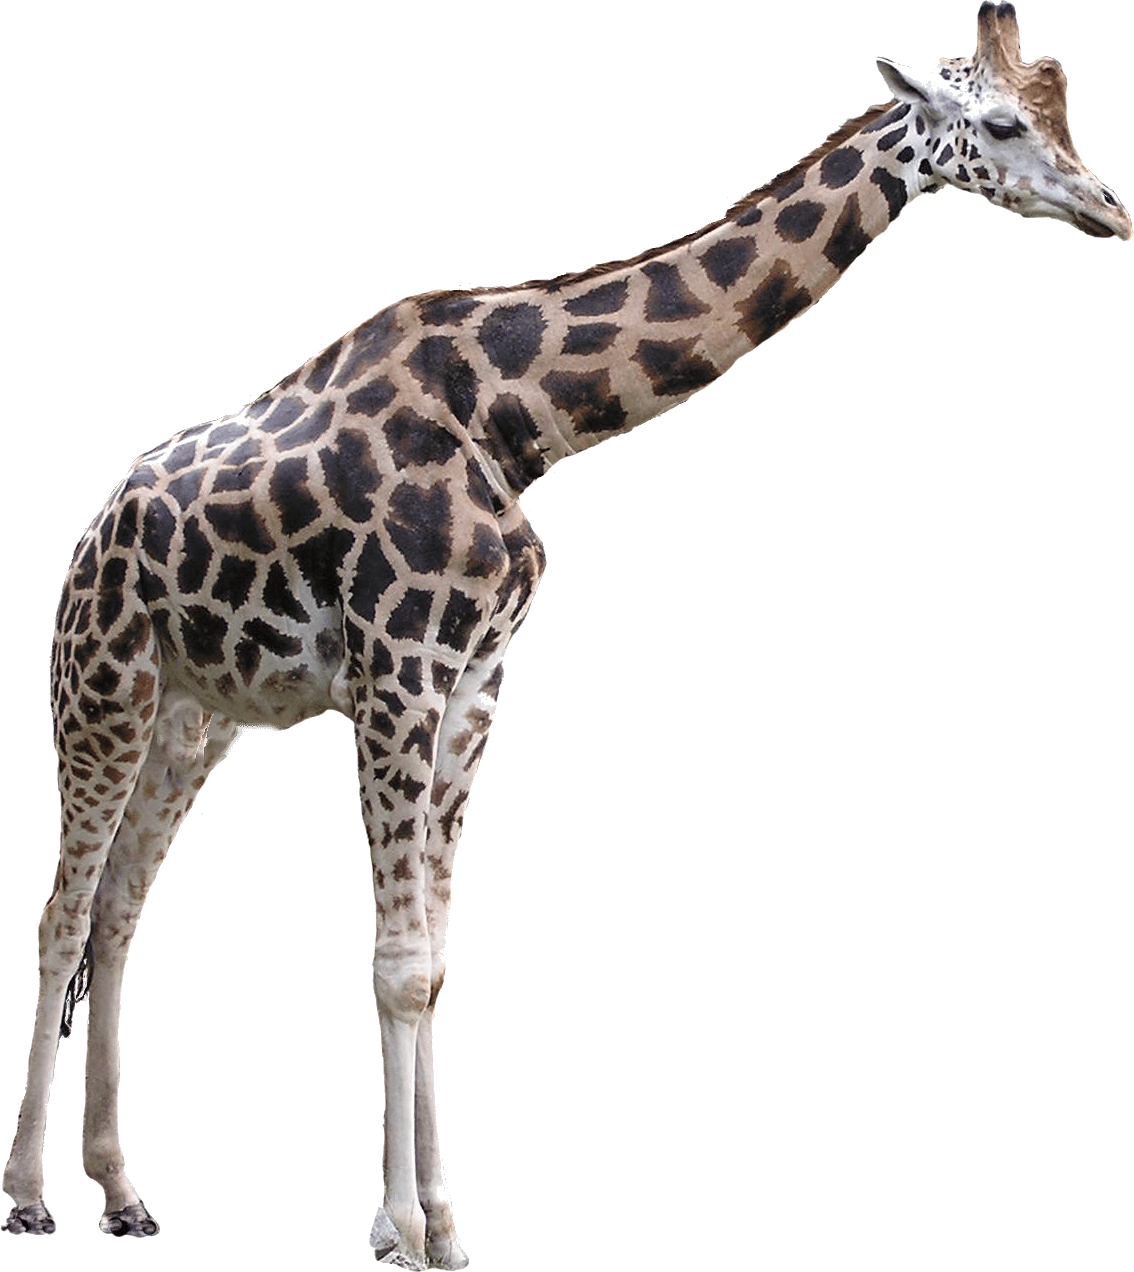 Giraffe transparent png. Giraffes images stickpng large